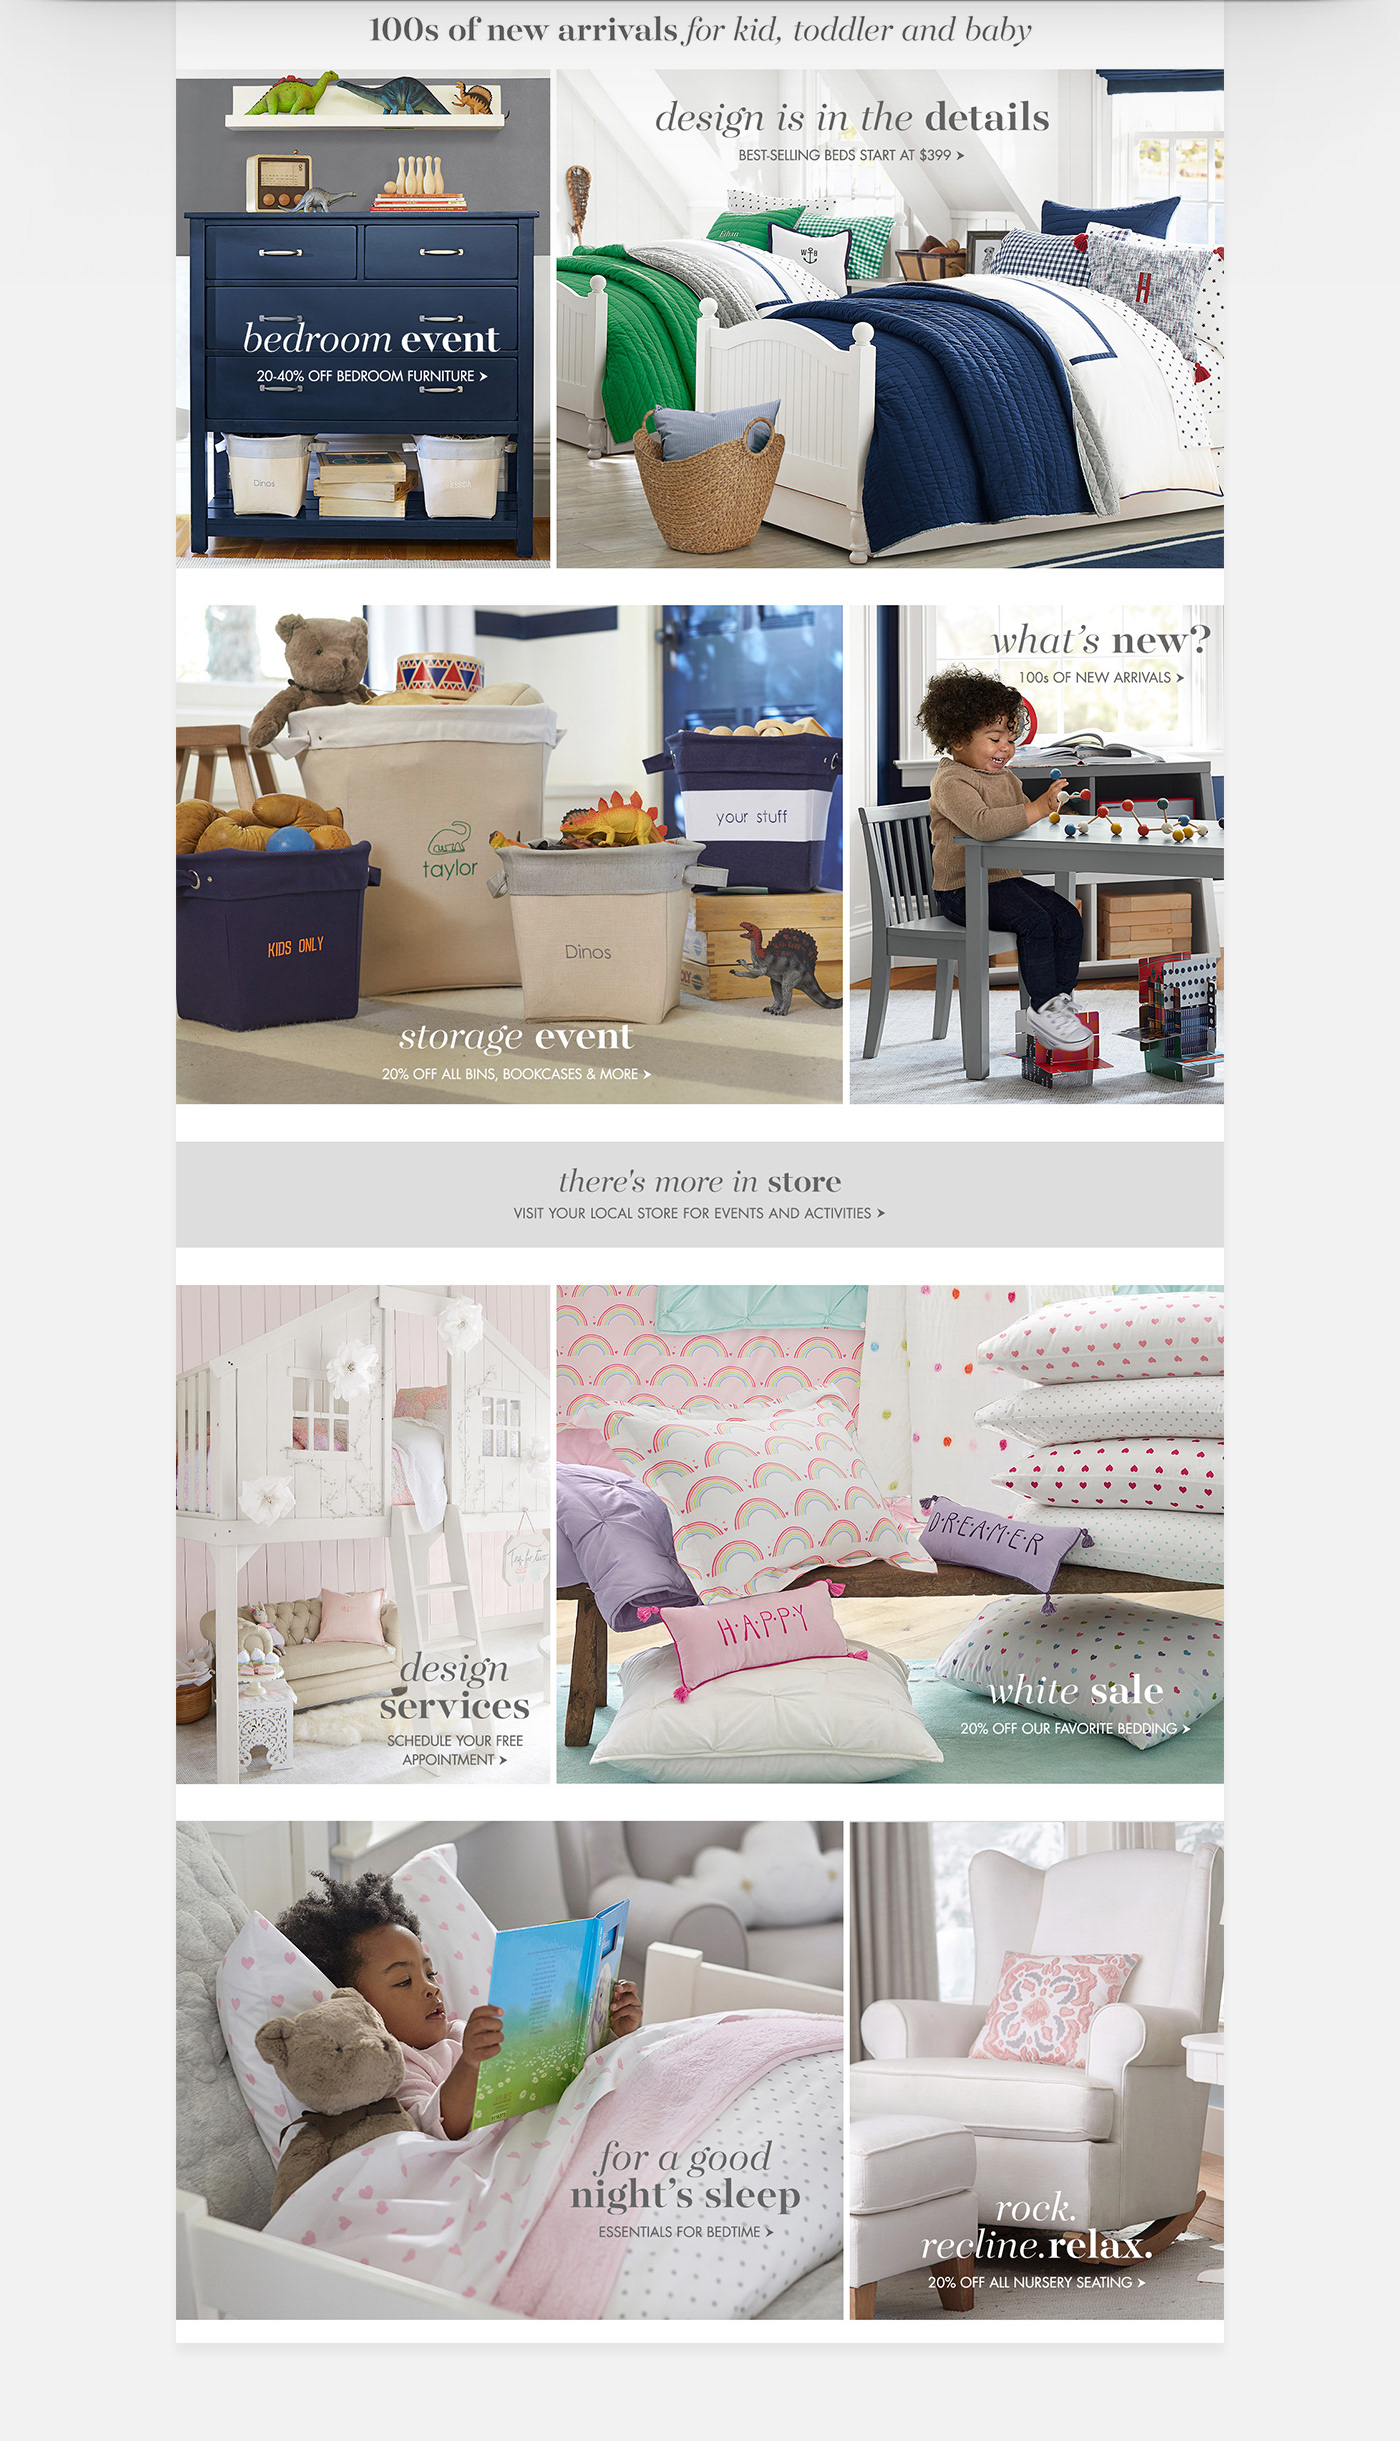 maureen mcginn - Pottery Barn Kids Homepages